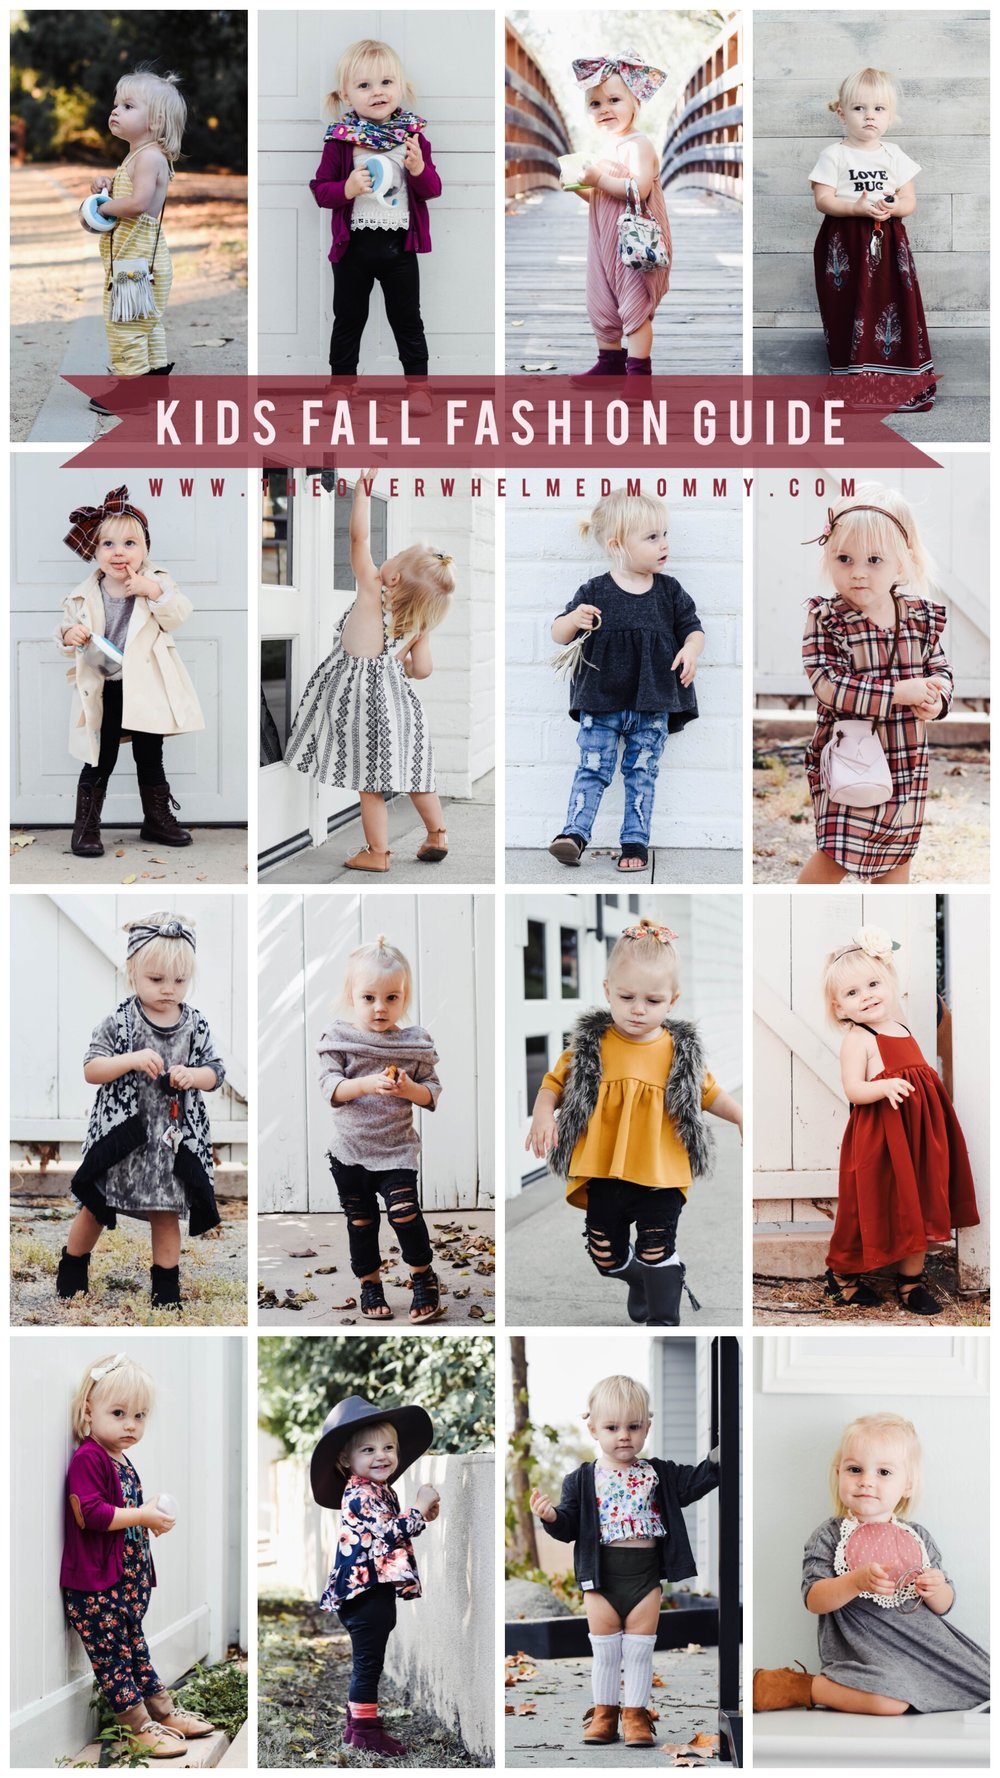 Cute Fall Kids Clothes- 2017 Kids Fall Fashion Guide